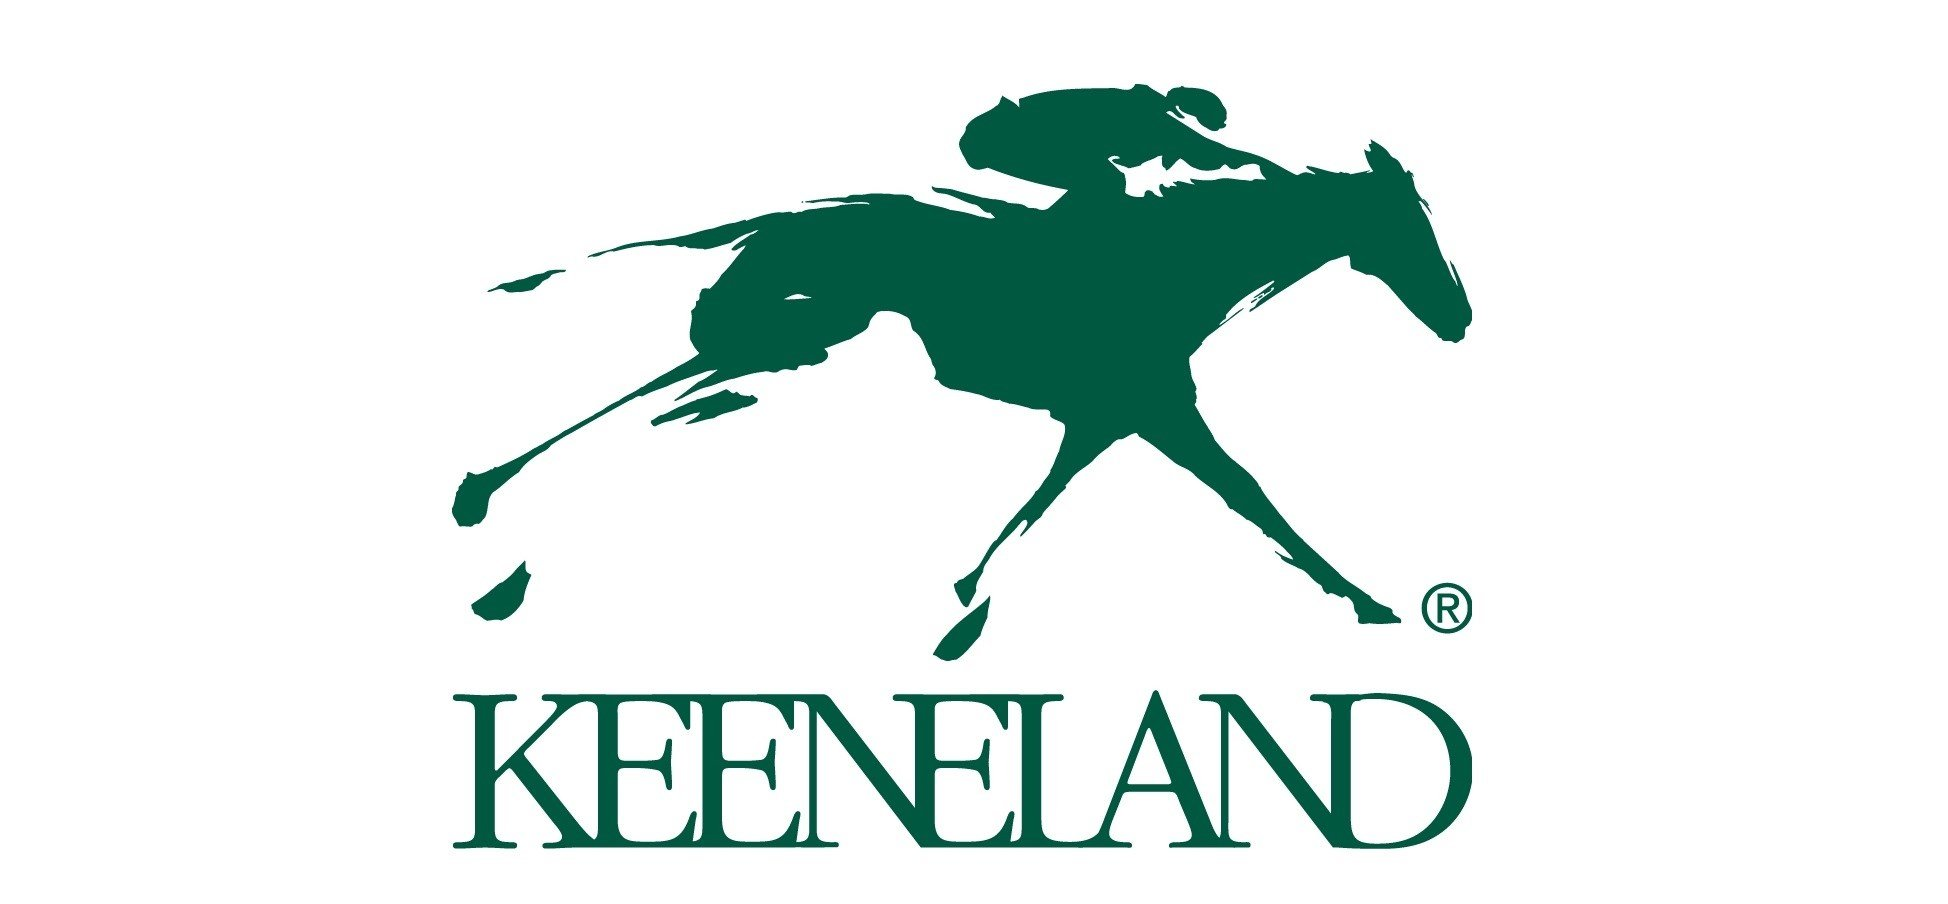 Keeneland barn notes april 19 lex18 continuous news and keeneland barn notes april 19 lex18 continuous news and stormtracker weather falaconquin